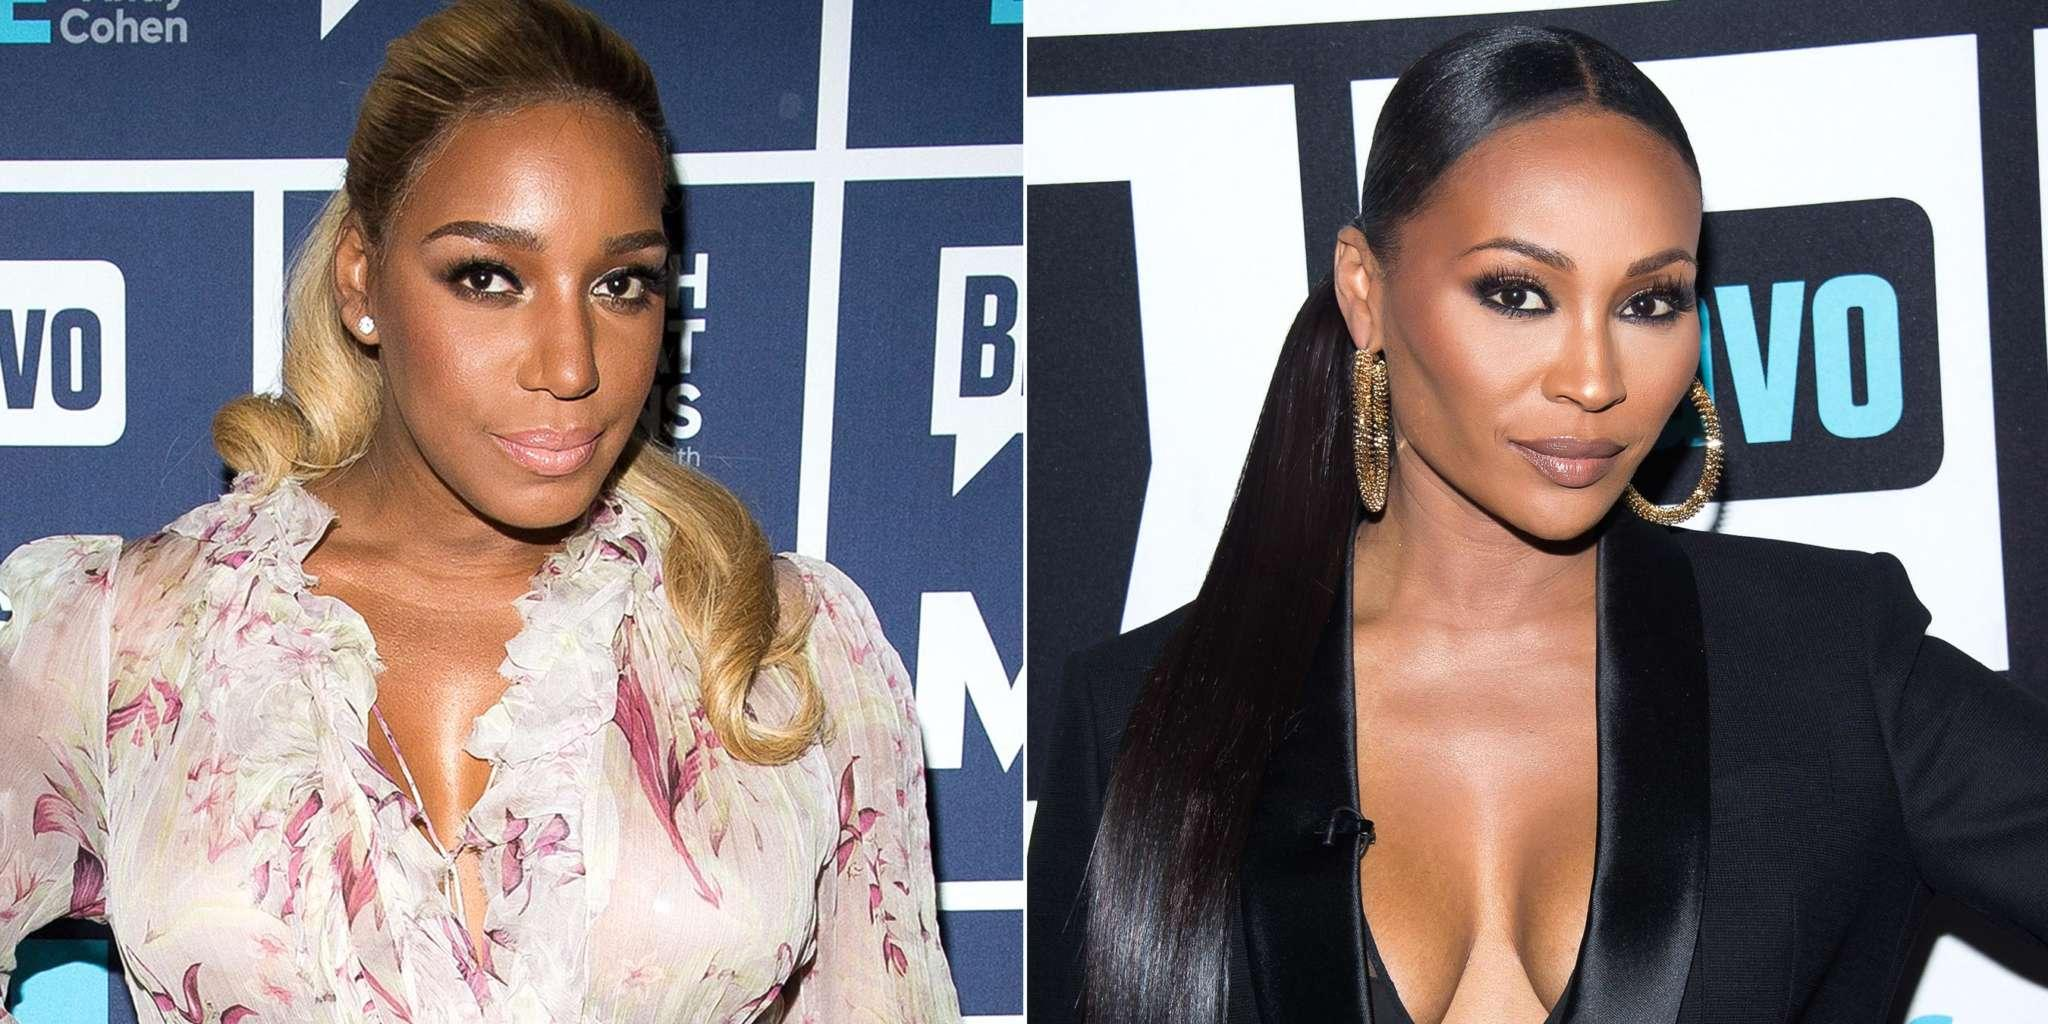 Nene Leakes And Cynthia Bailey Finally Have Tense One On One Conversation